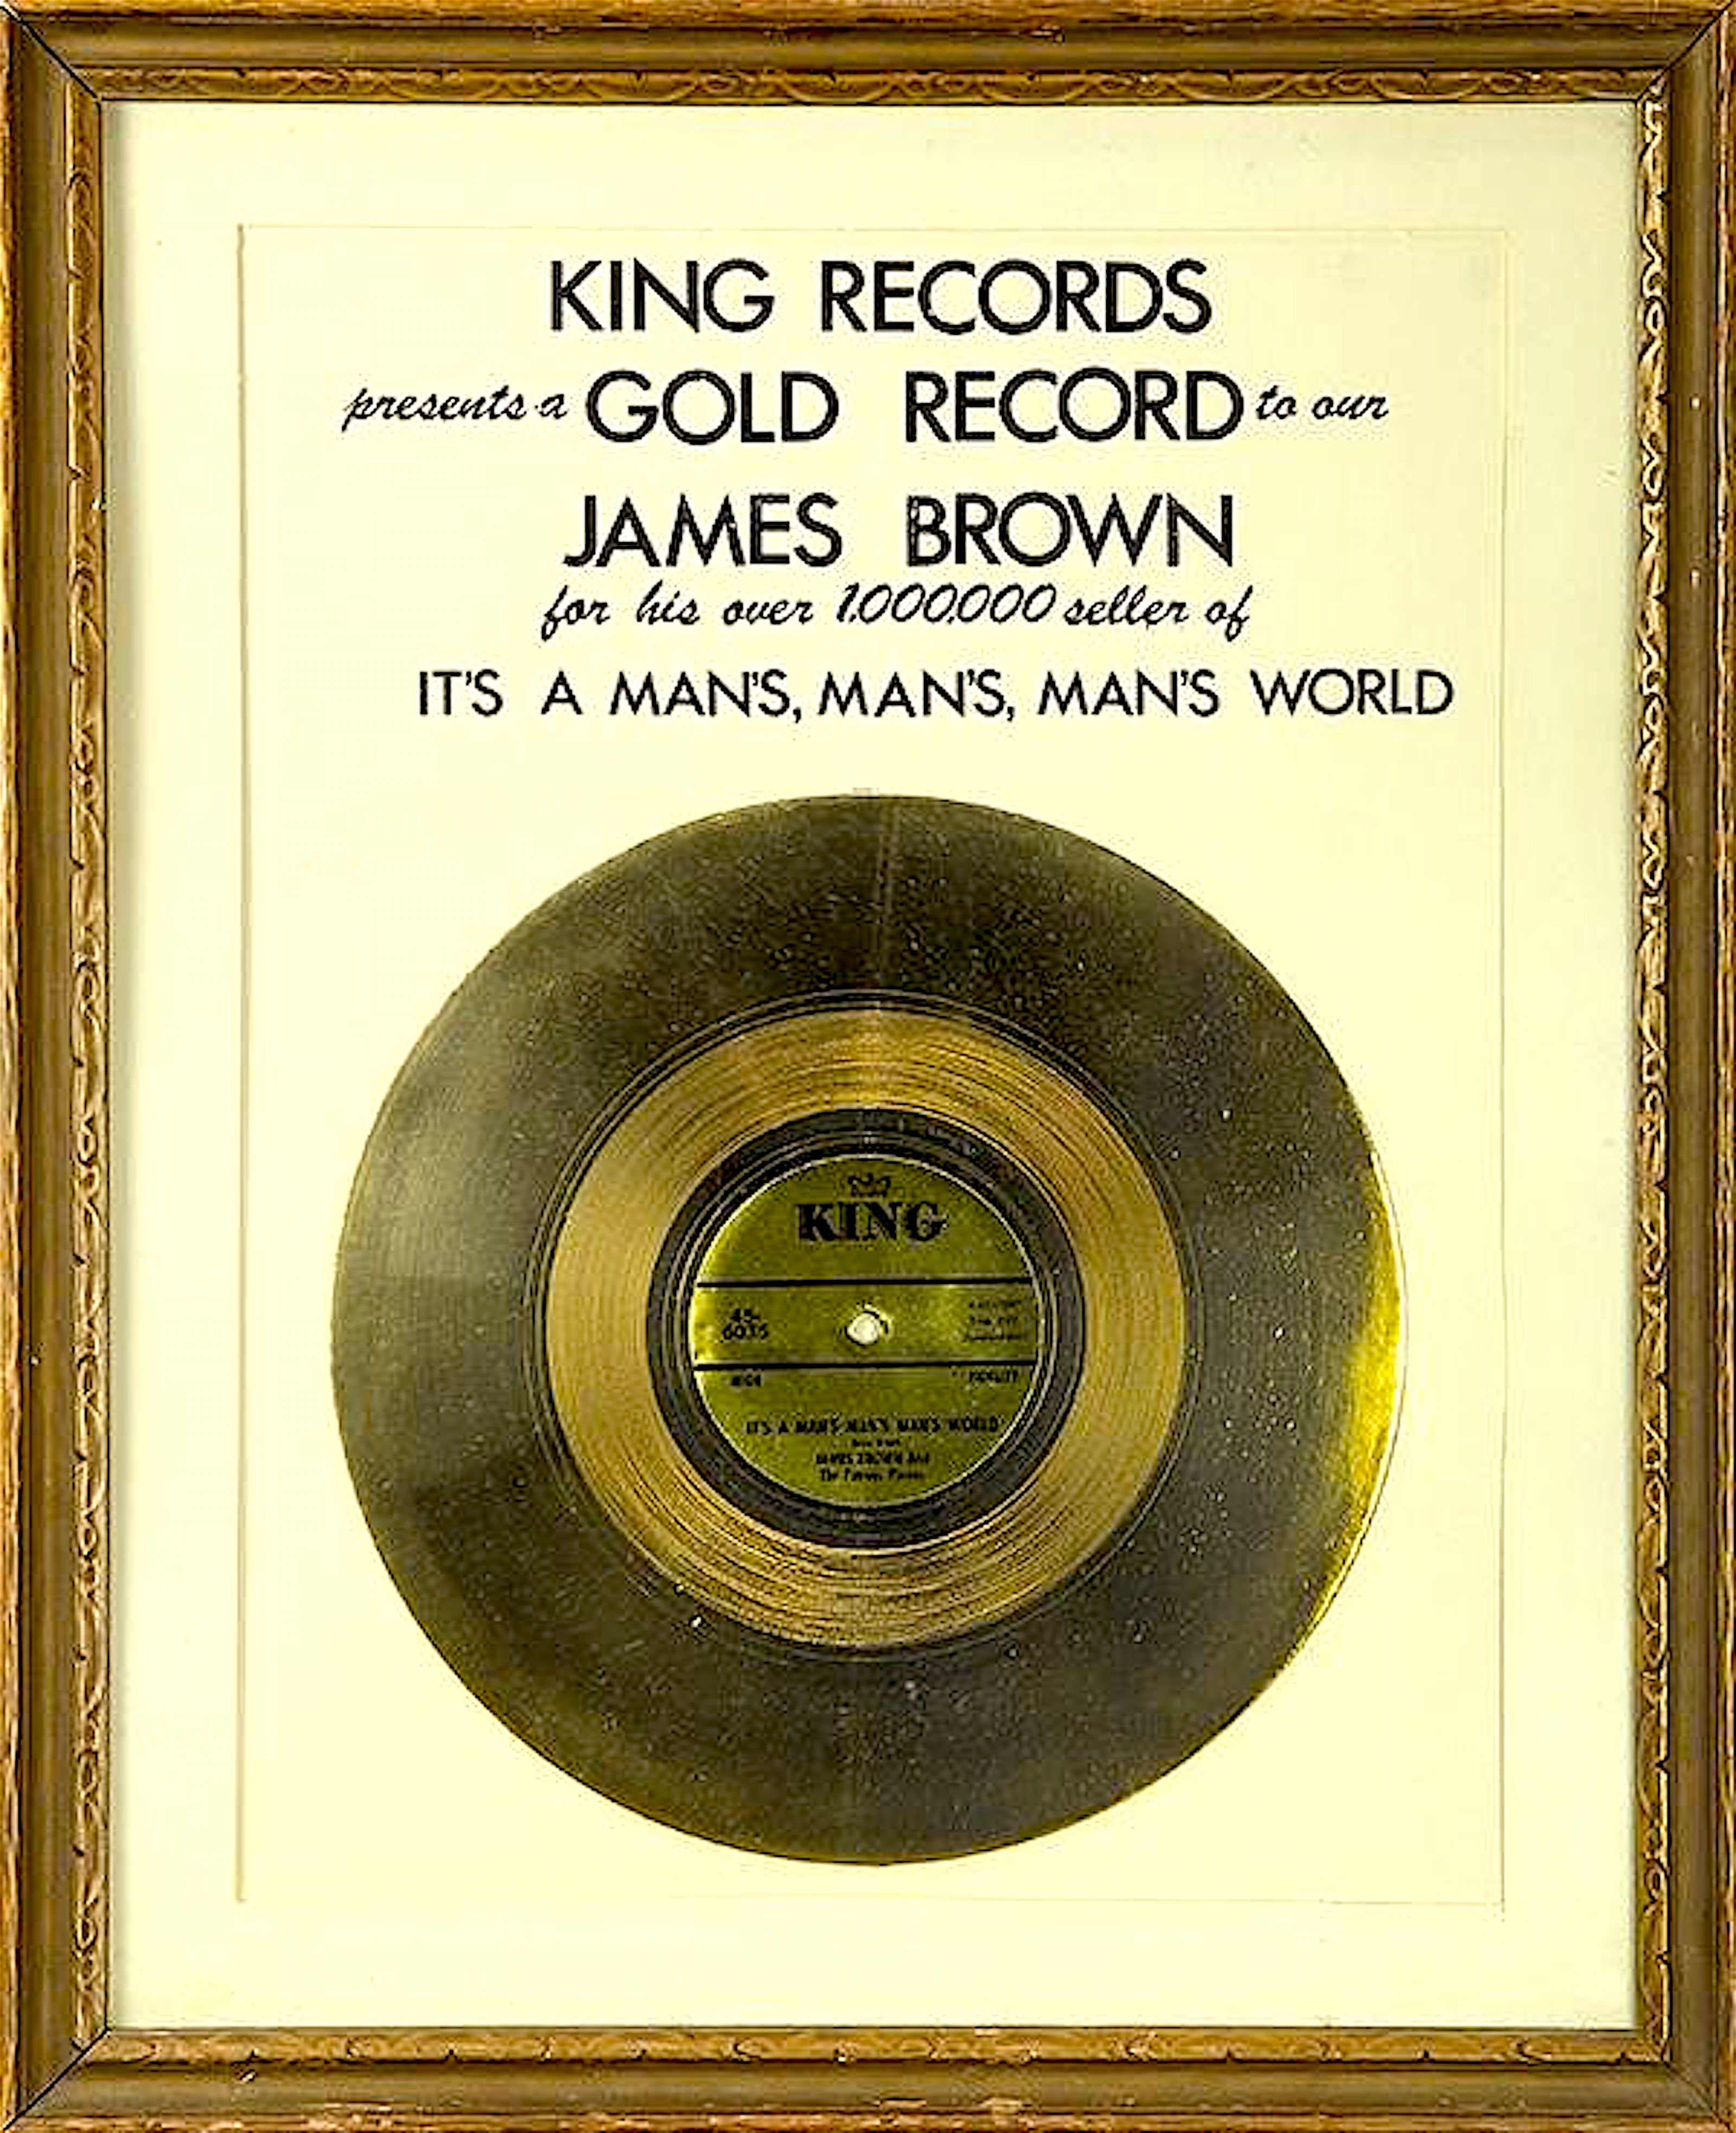 King Records presents a GOLD RECORD to our JAMES BROWN for his over 1.000.000 seller of IT'S A MAN'S, MAN'S, MAN'S WORLD (foto Bidsquare)